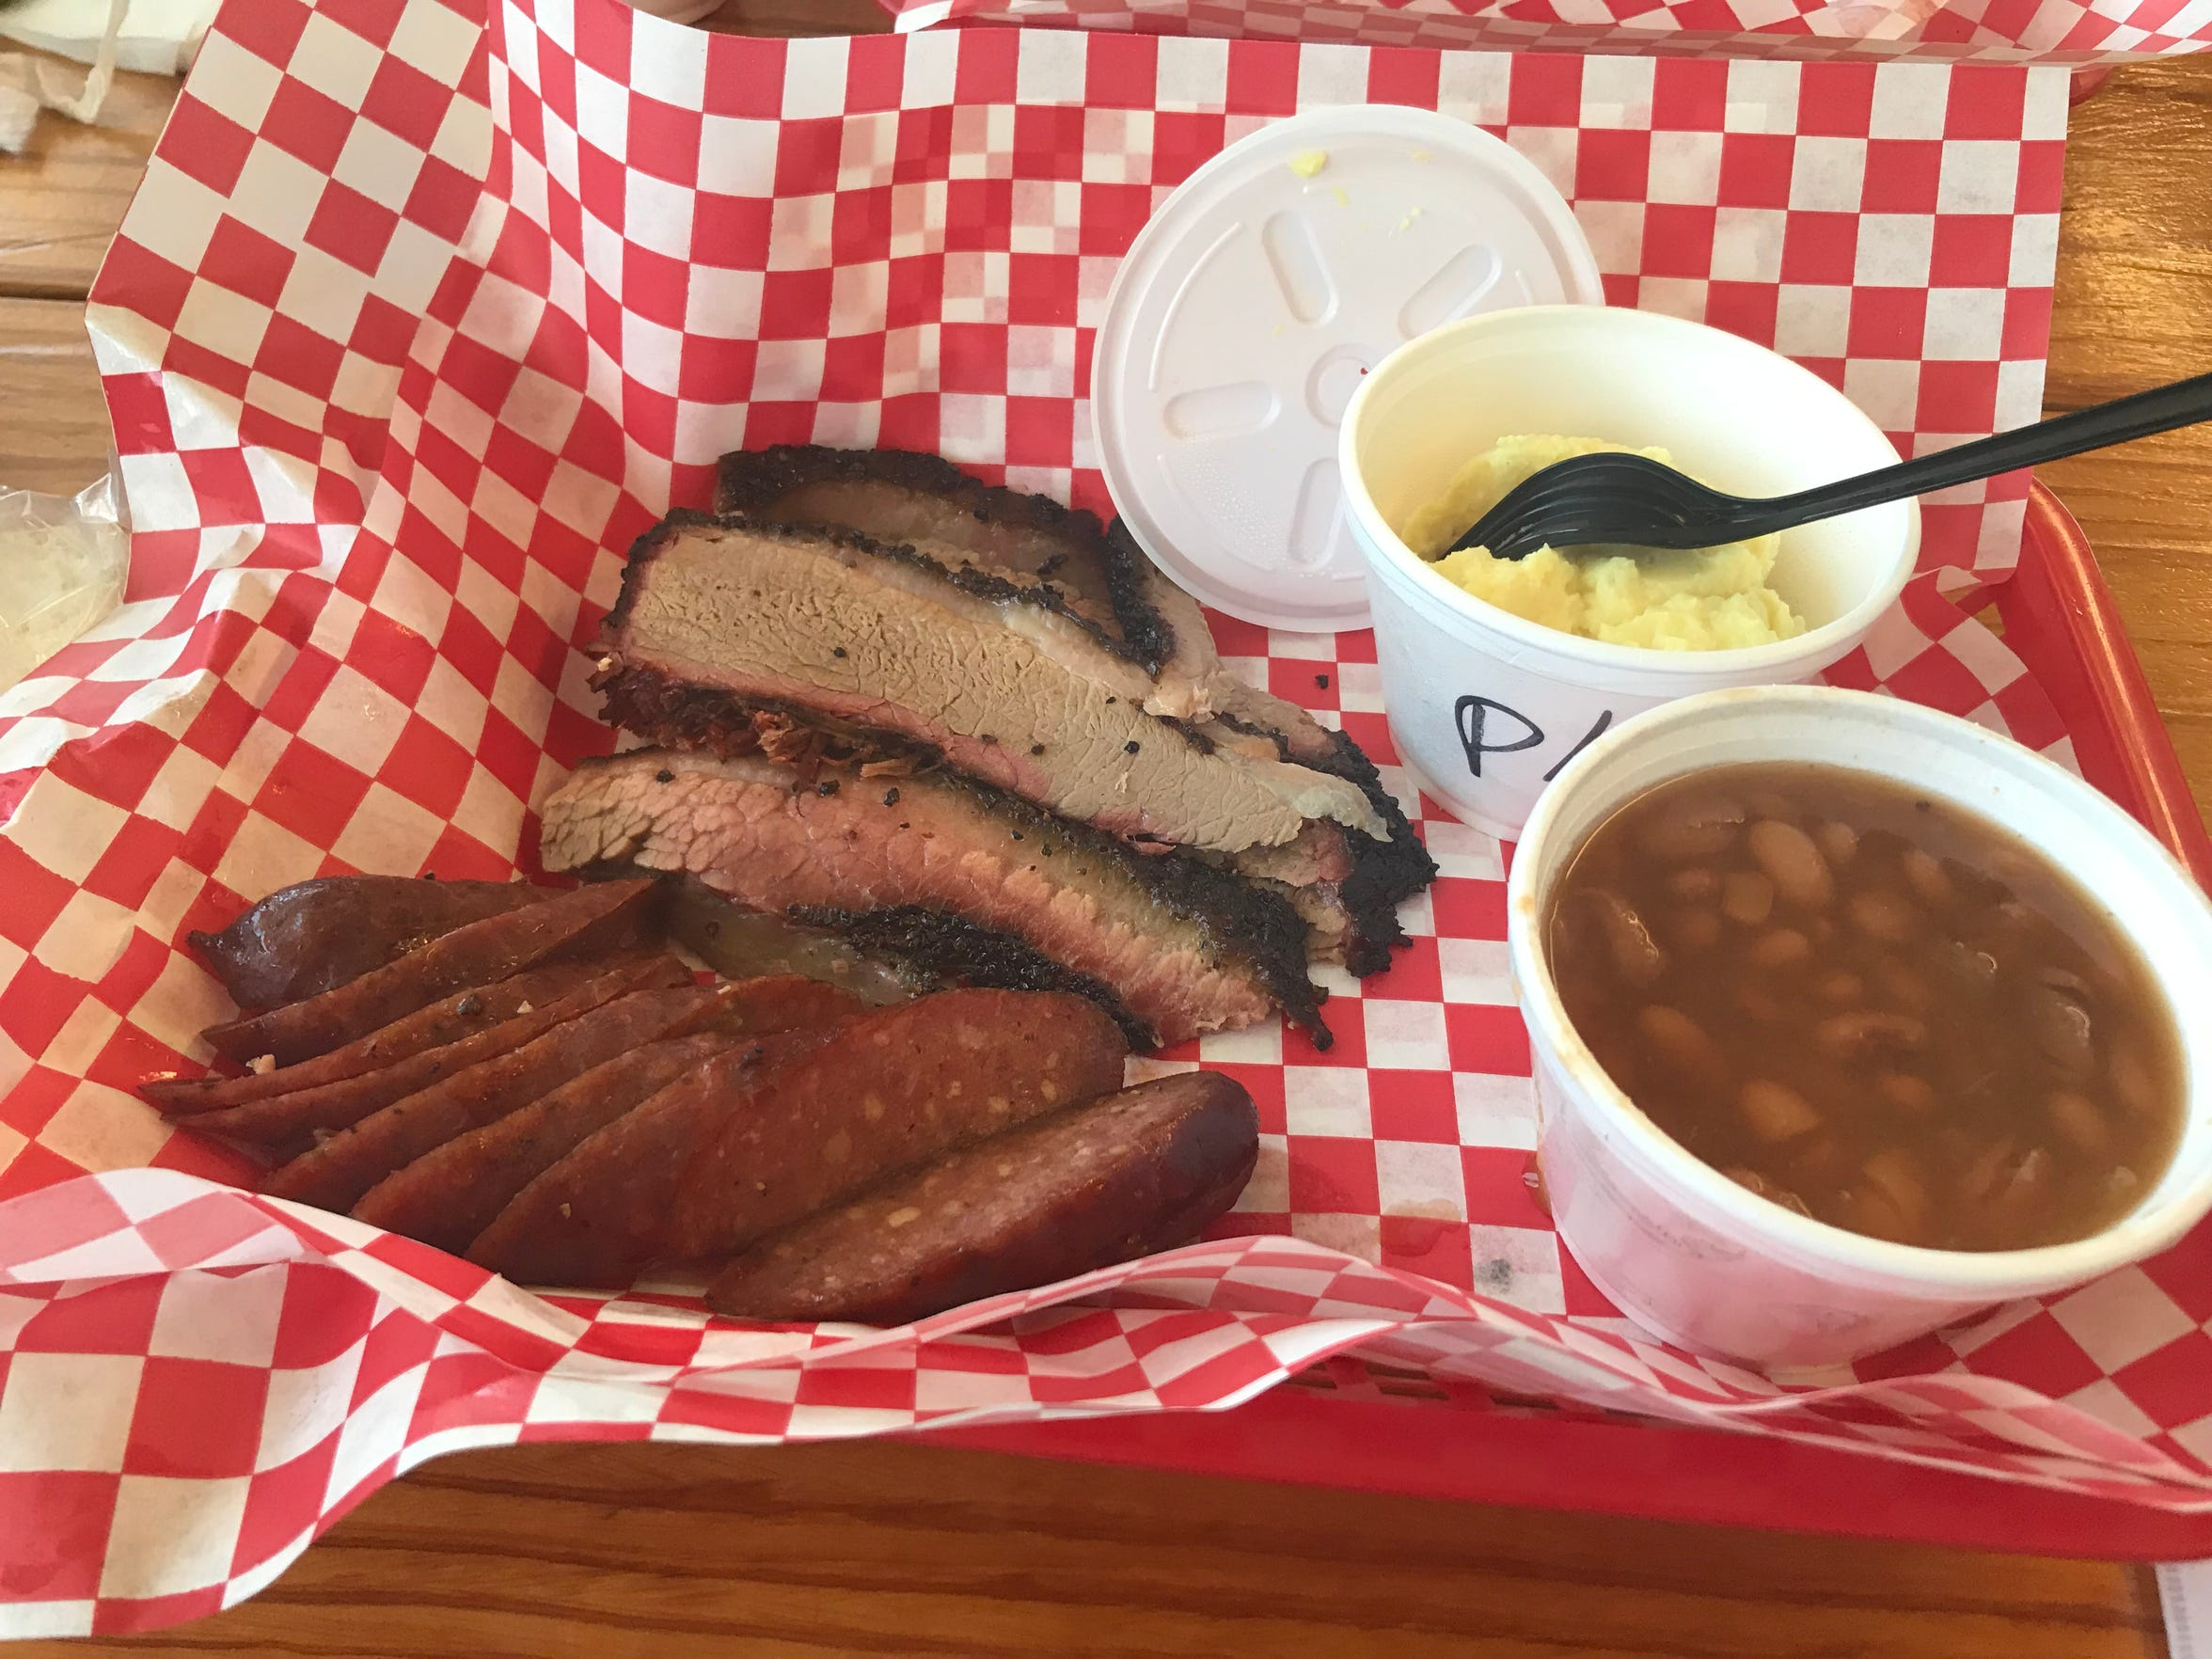 A two-meat plate with potato salad and pinto beans from Julian's BBQ in Corpus Christi.